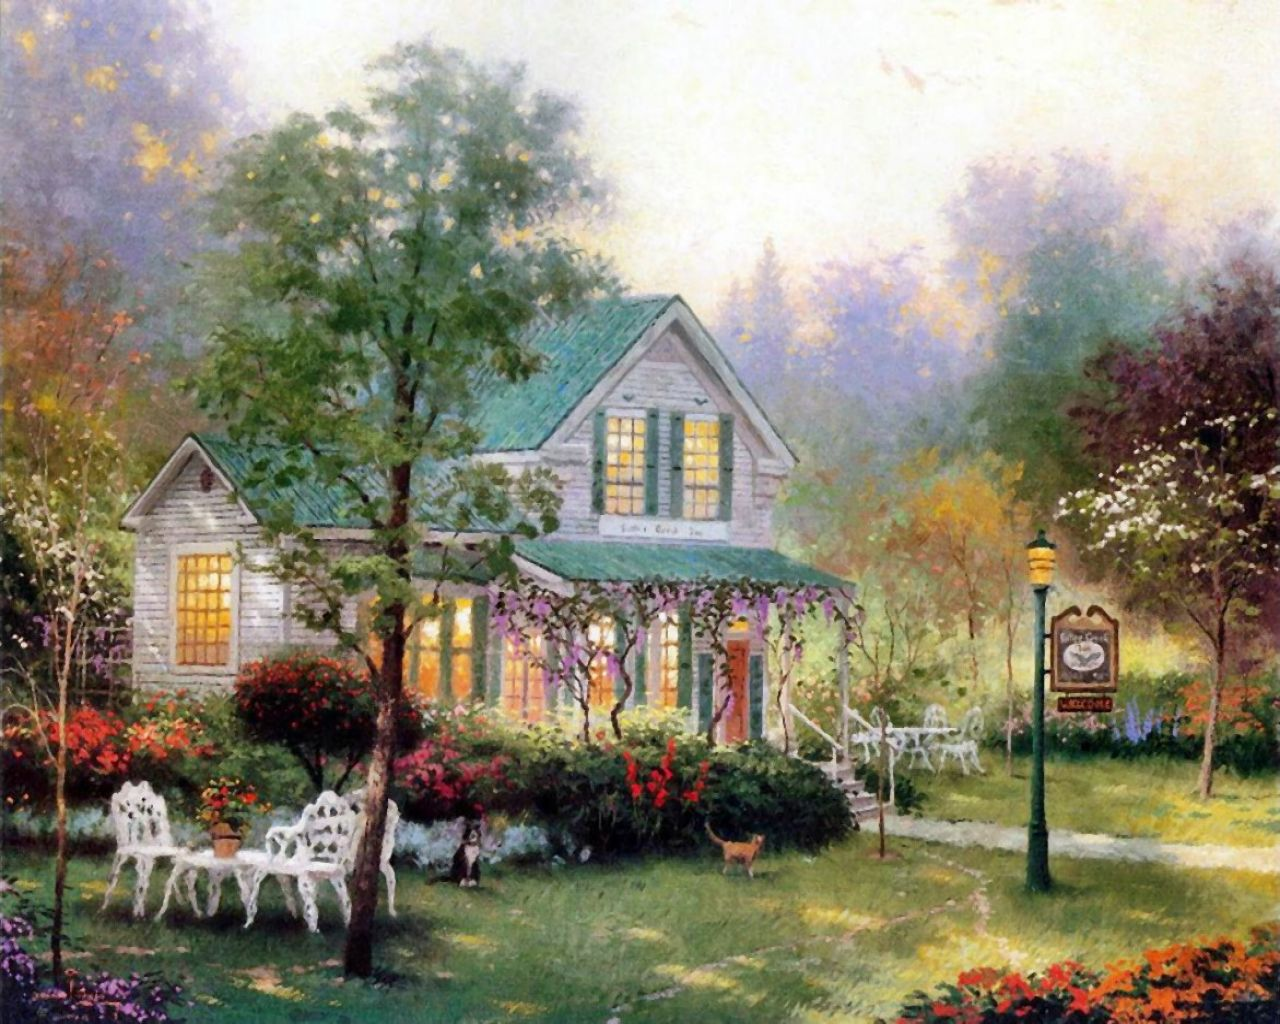 Thomas Kinkade - a beautiful garden and a summer house